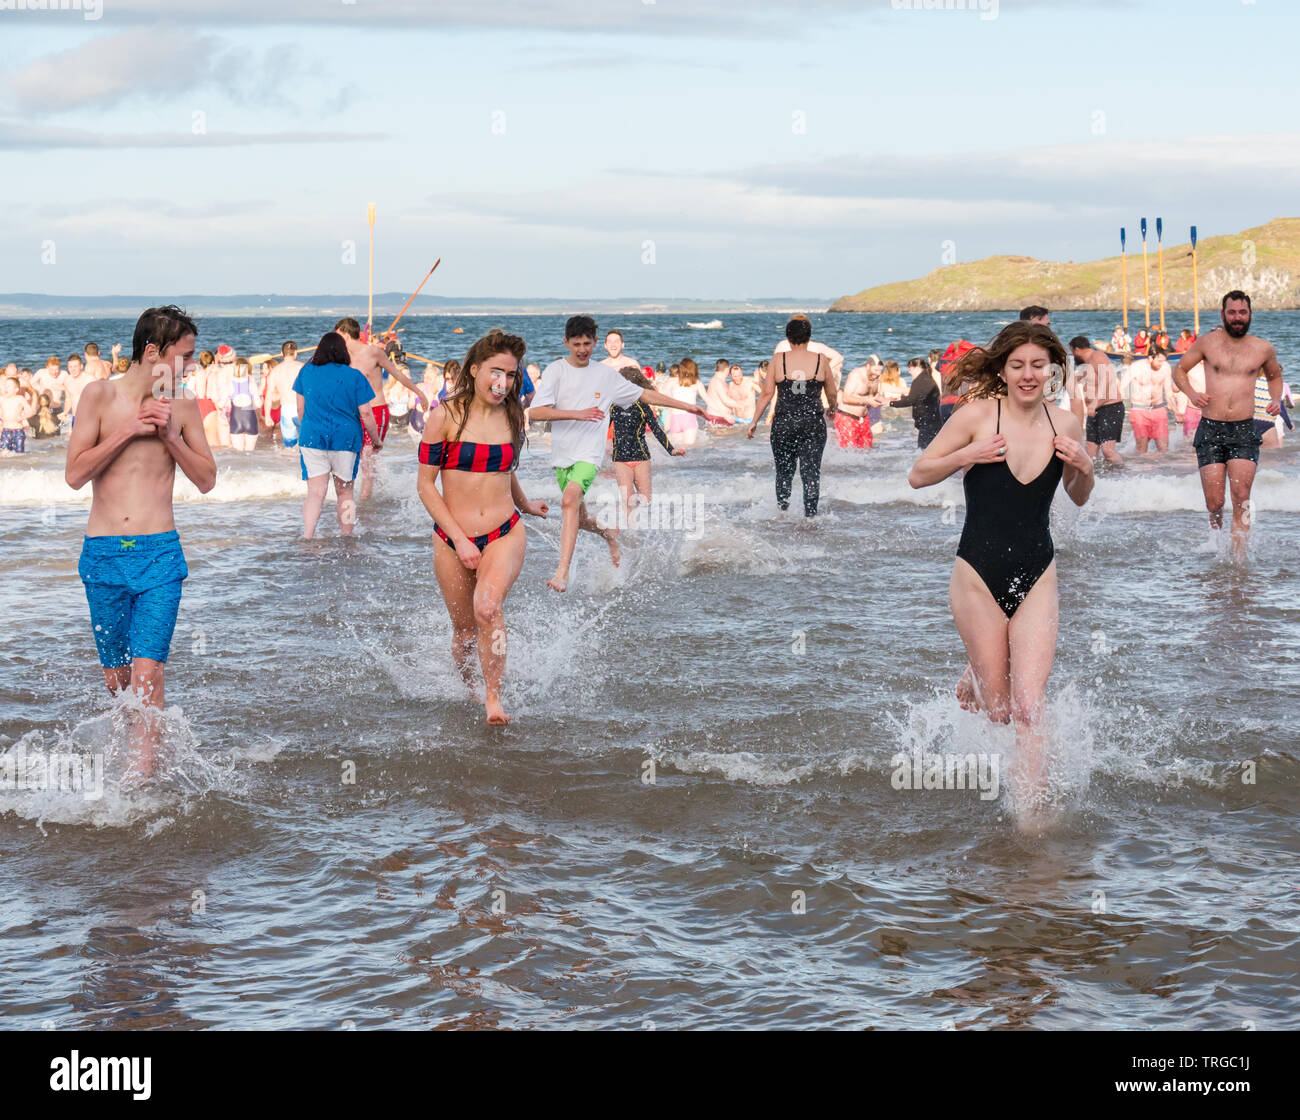 Loony Dook , New Year's Day: People brave the cold water, West Bay, Firth of Forth, North Berwick, East Lothian, Scotland, UK. People run into the sea - Stock Image